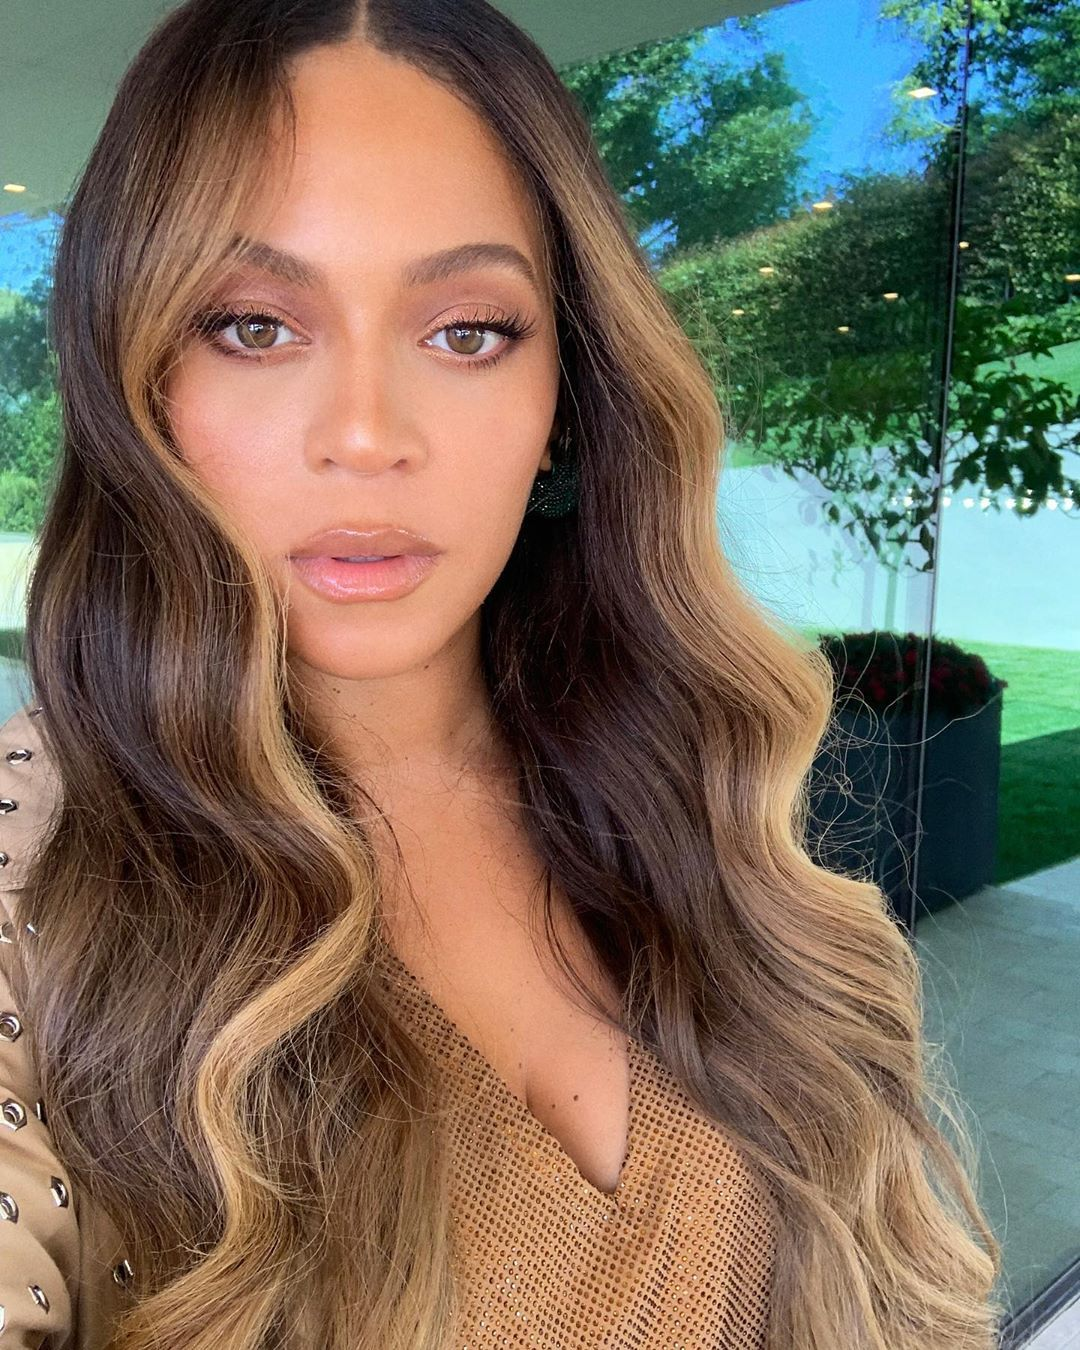 Lace Front Wigs Brown Wigs Blonde Wigs Strawberry Blonde Human Hair Wig Jessica Alba Blonde Hair Wigs For Black Women